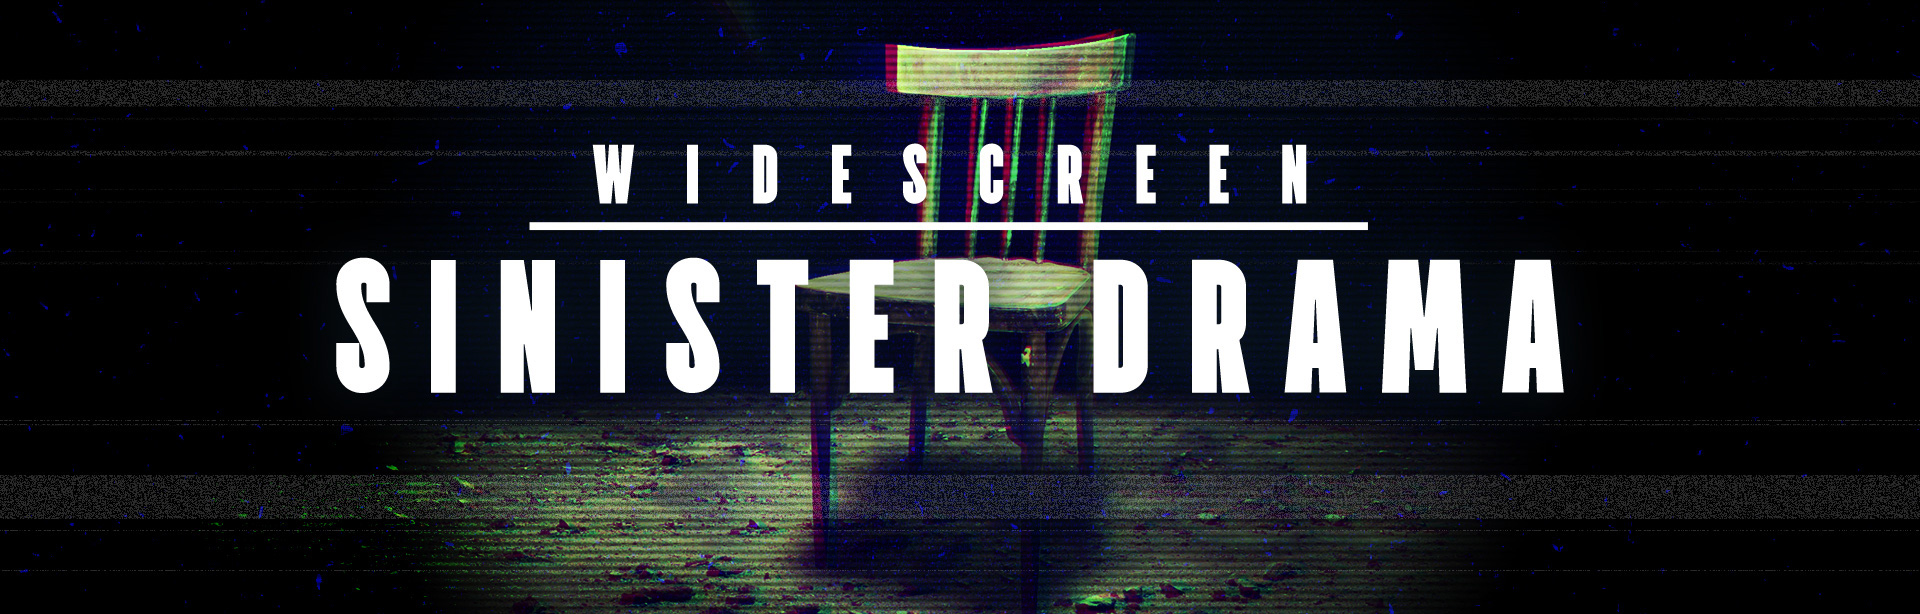 Sinister Drama - Widescreen